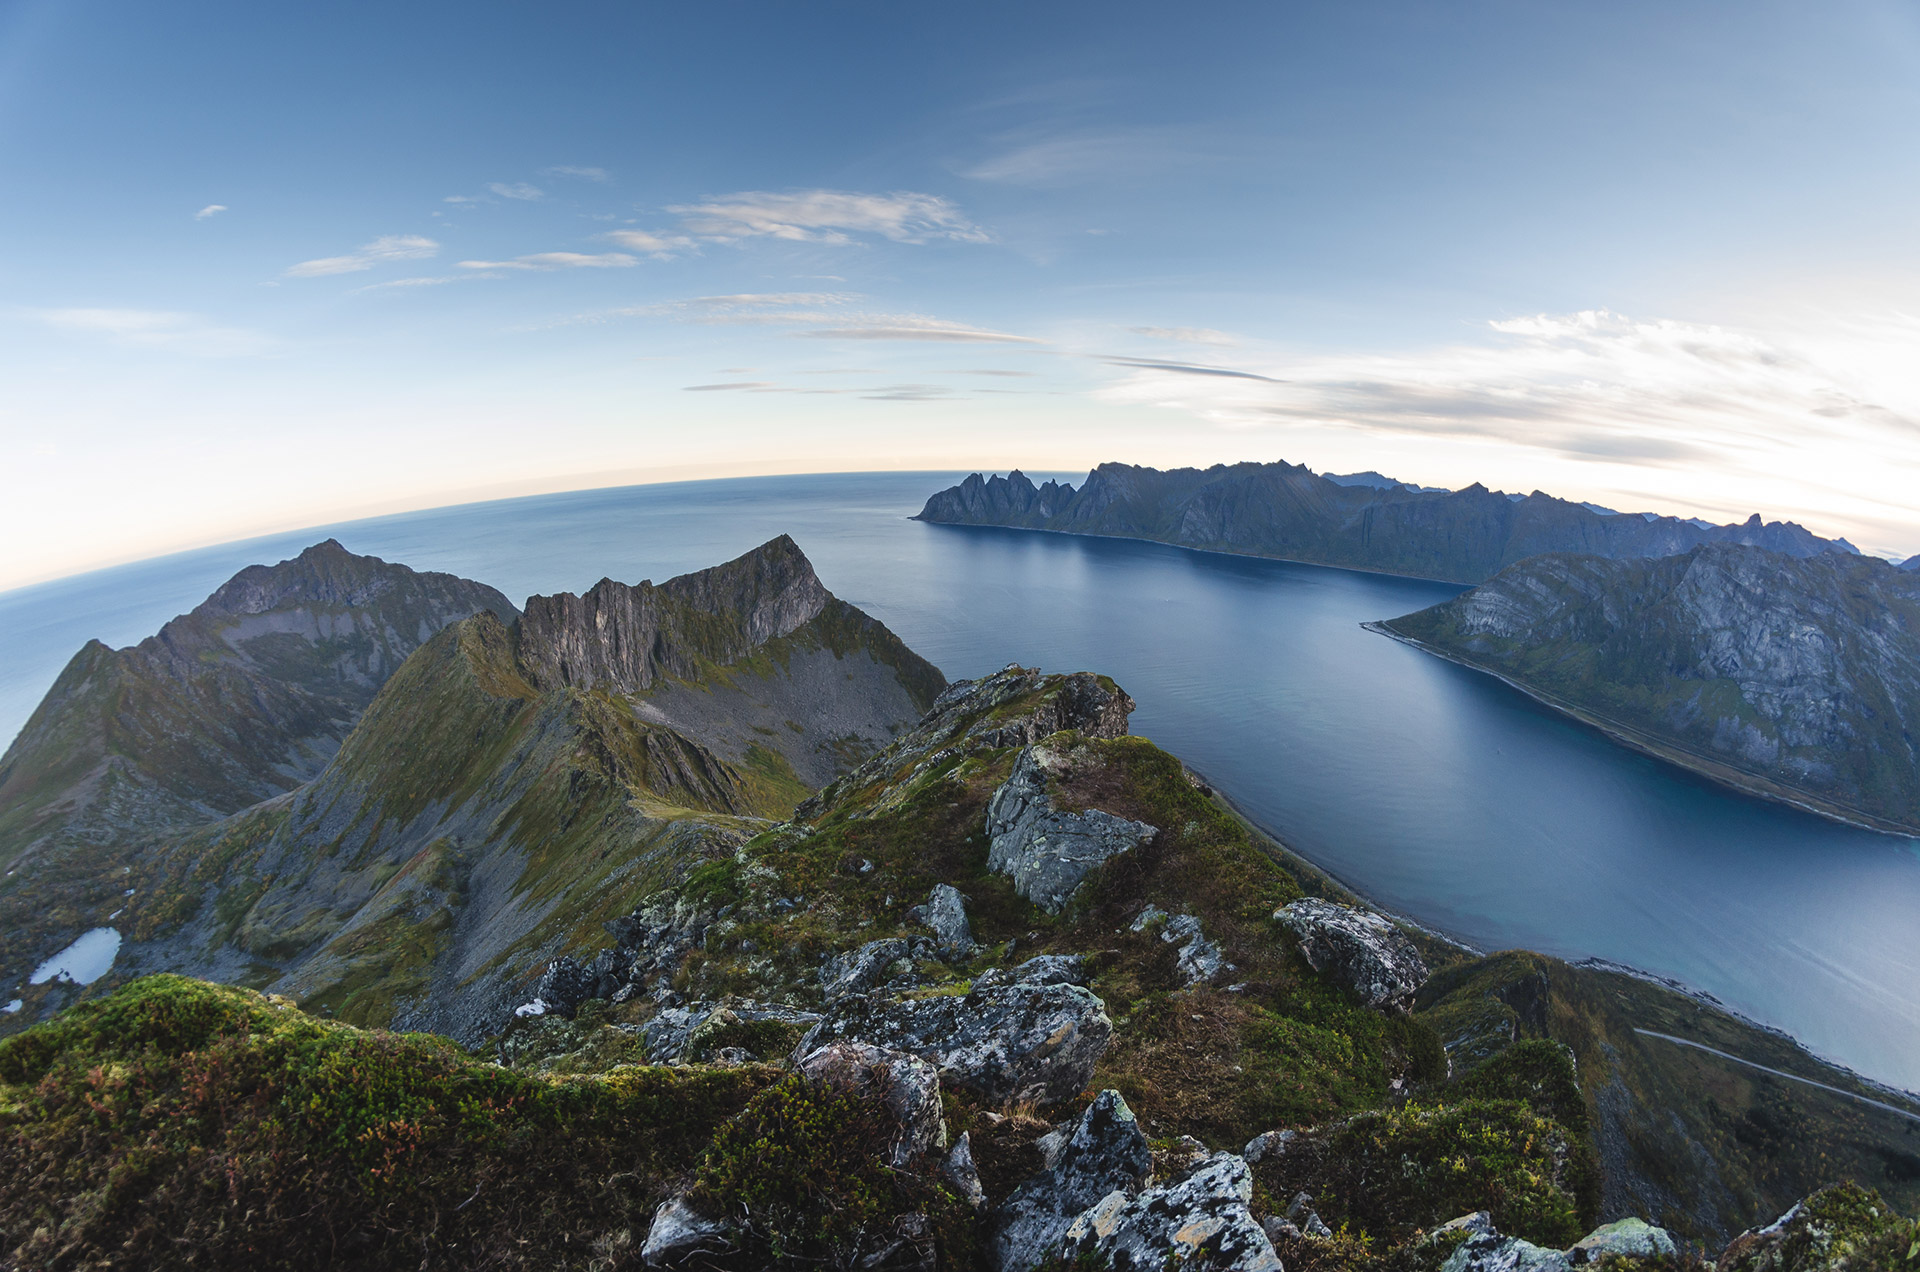 Senja is known for the characterstic mouintains